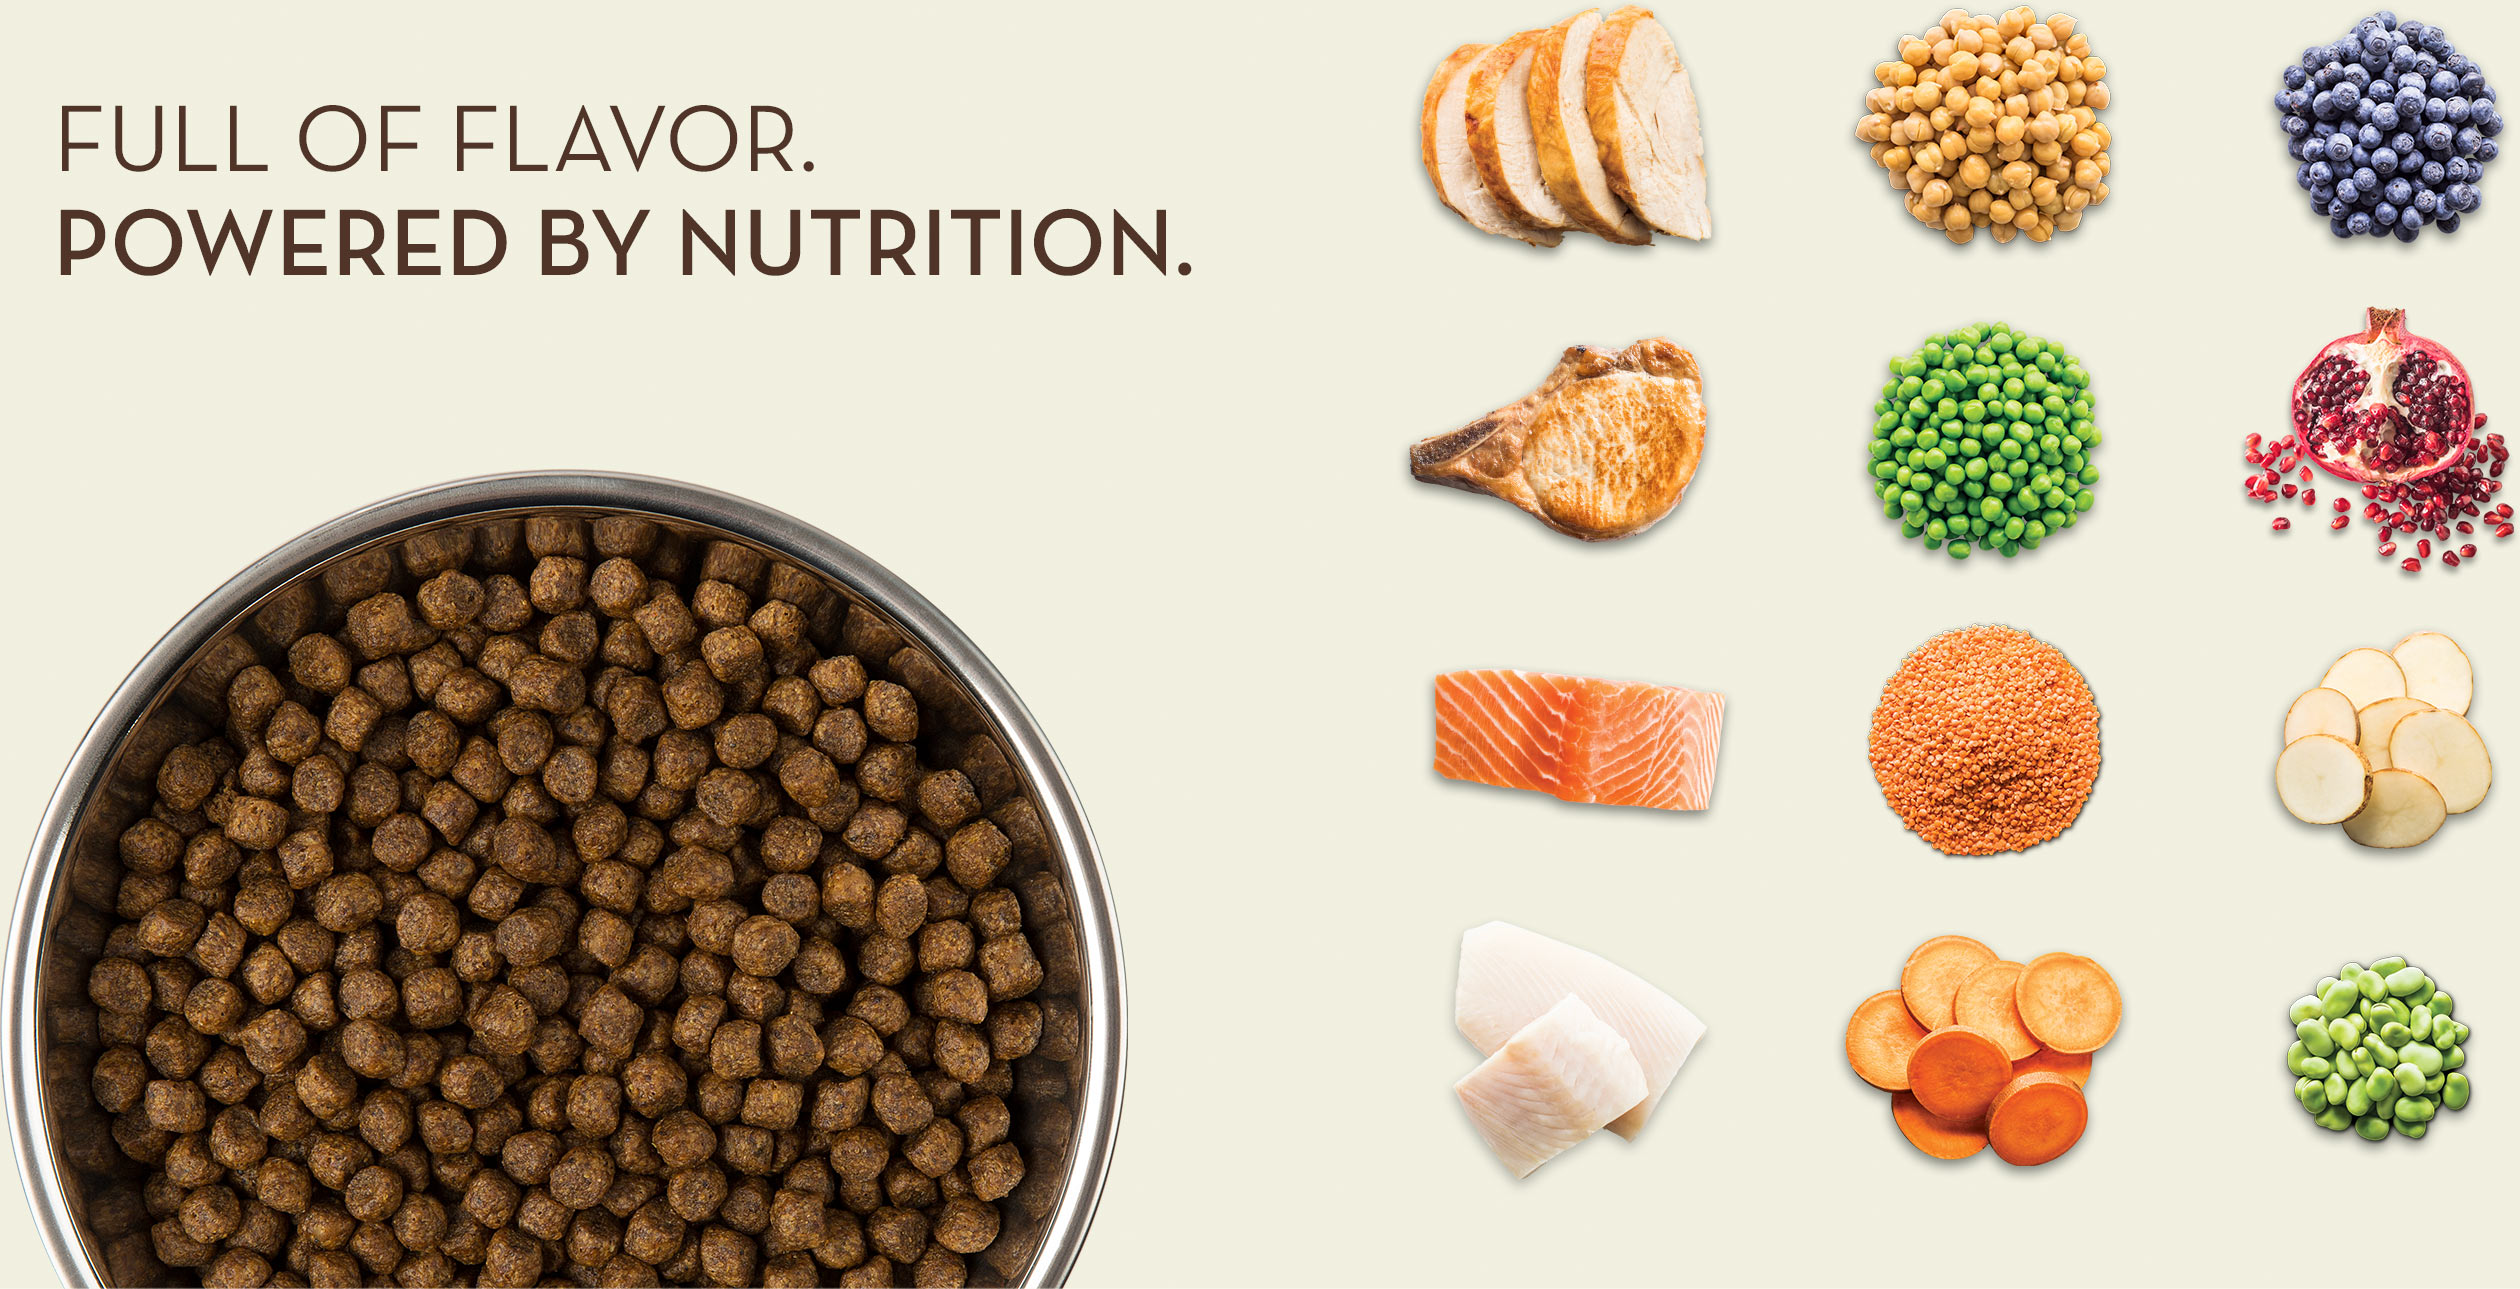 Full of Flavor. Powered by Nutrition.